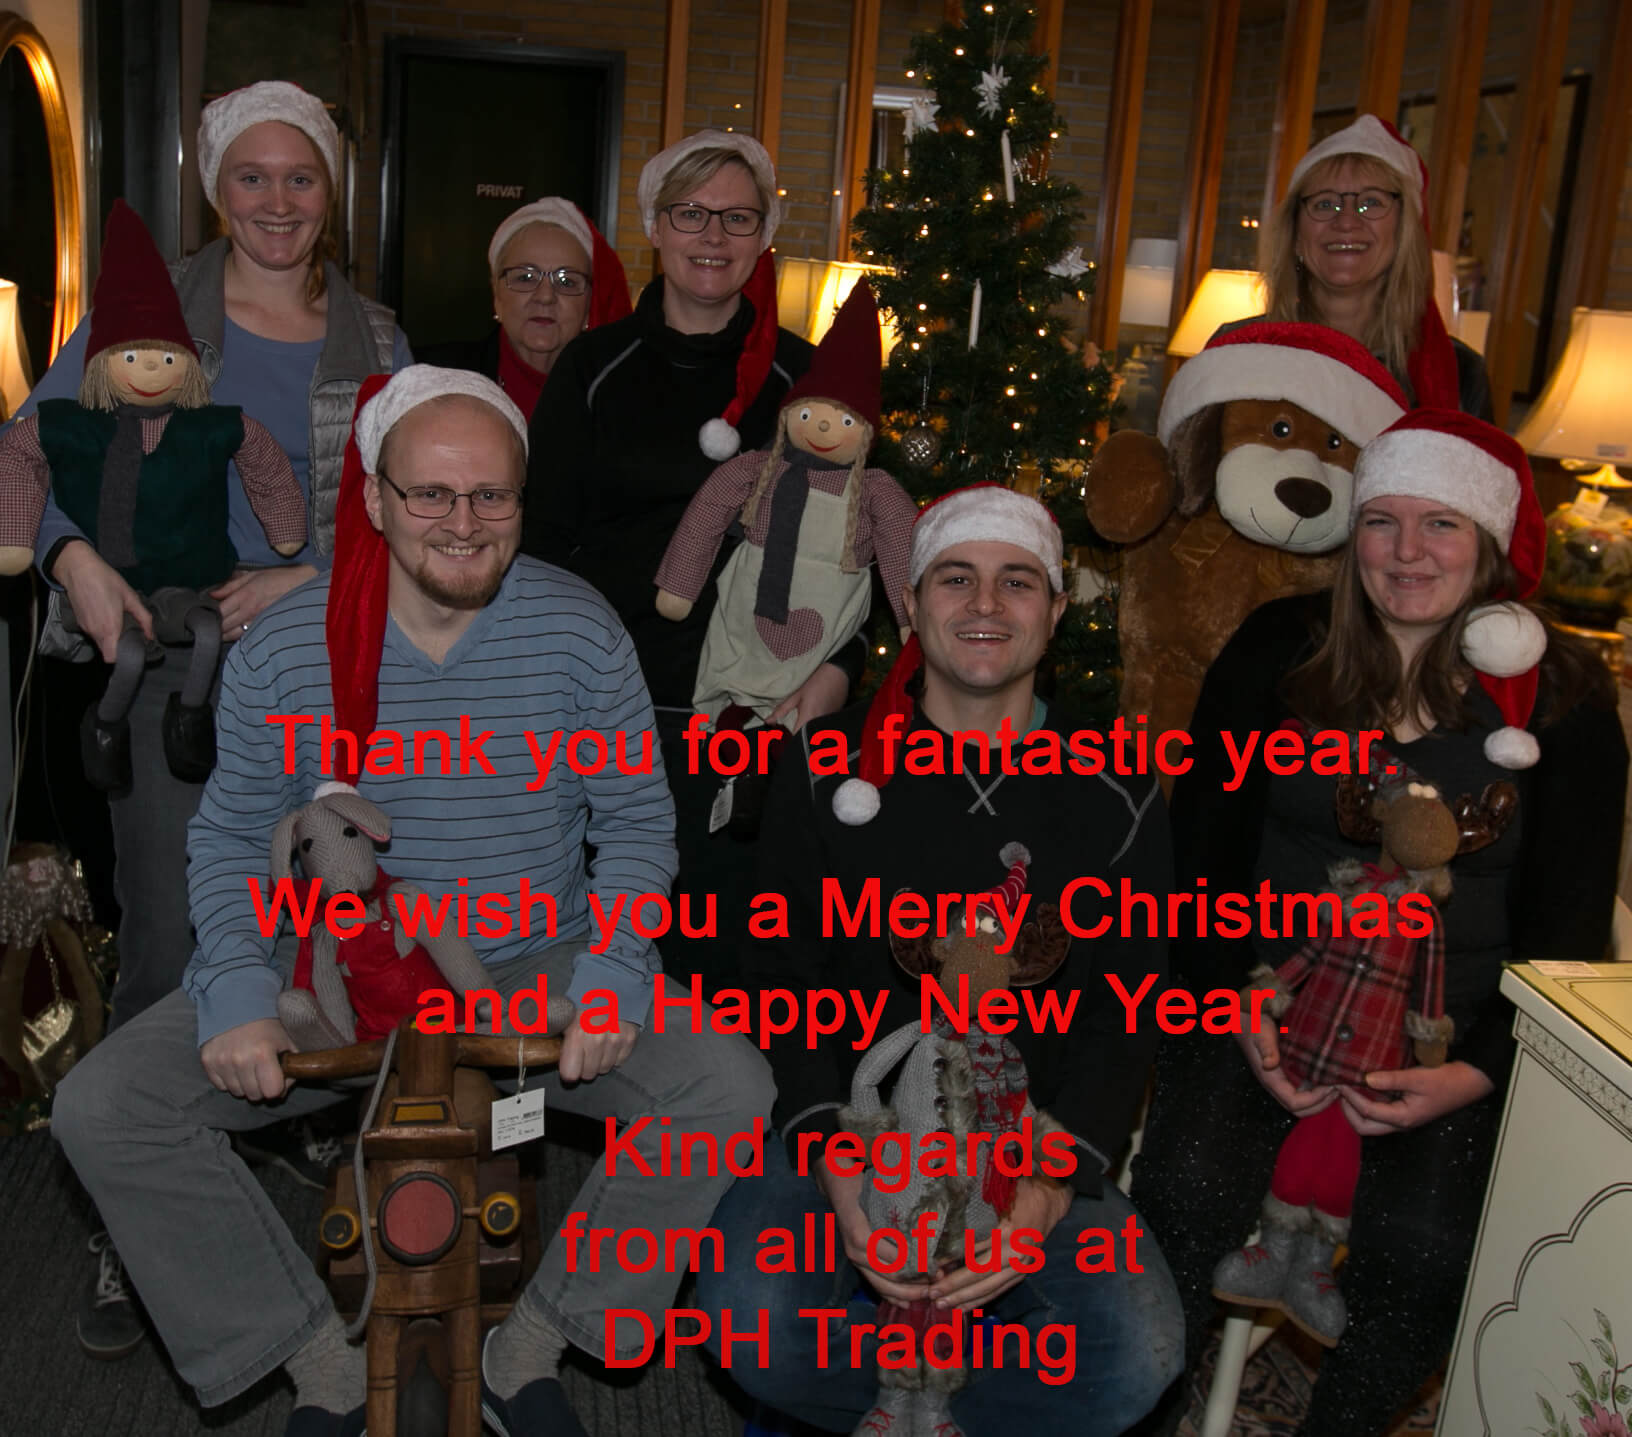 Christmas Greetings from os all at DPH Trading